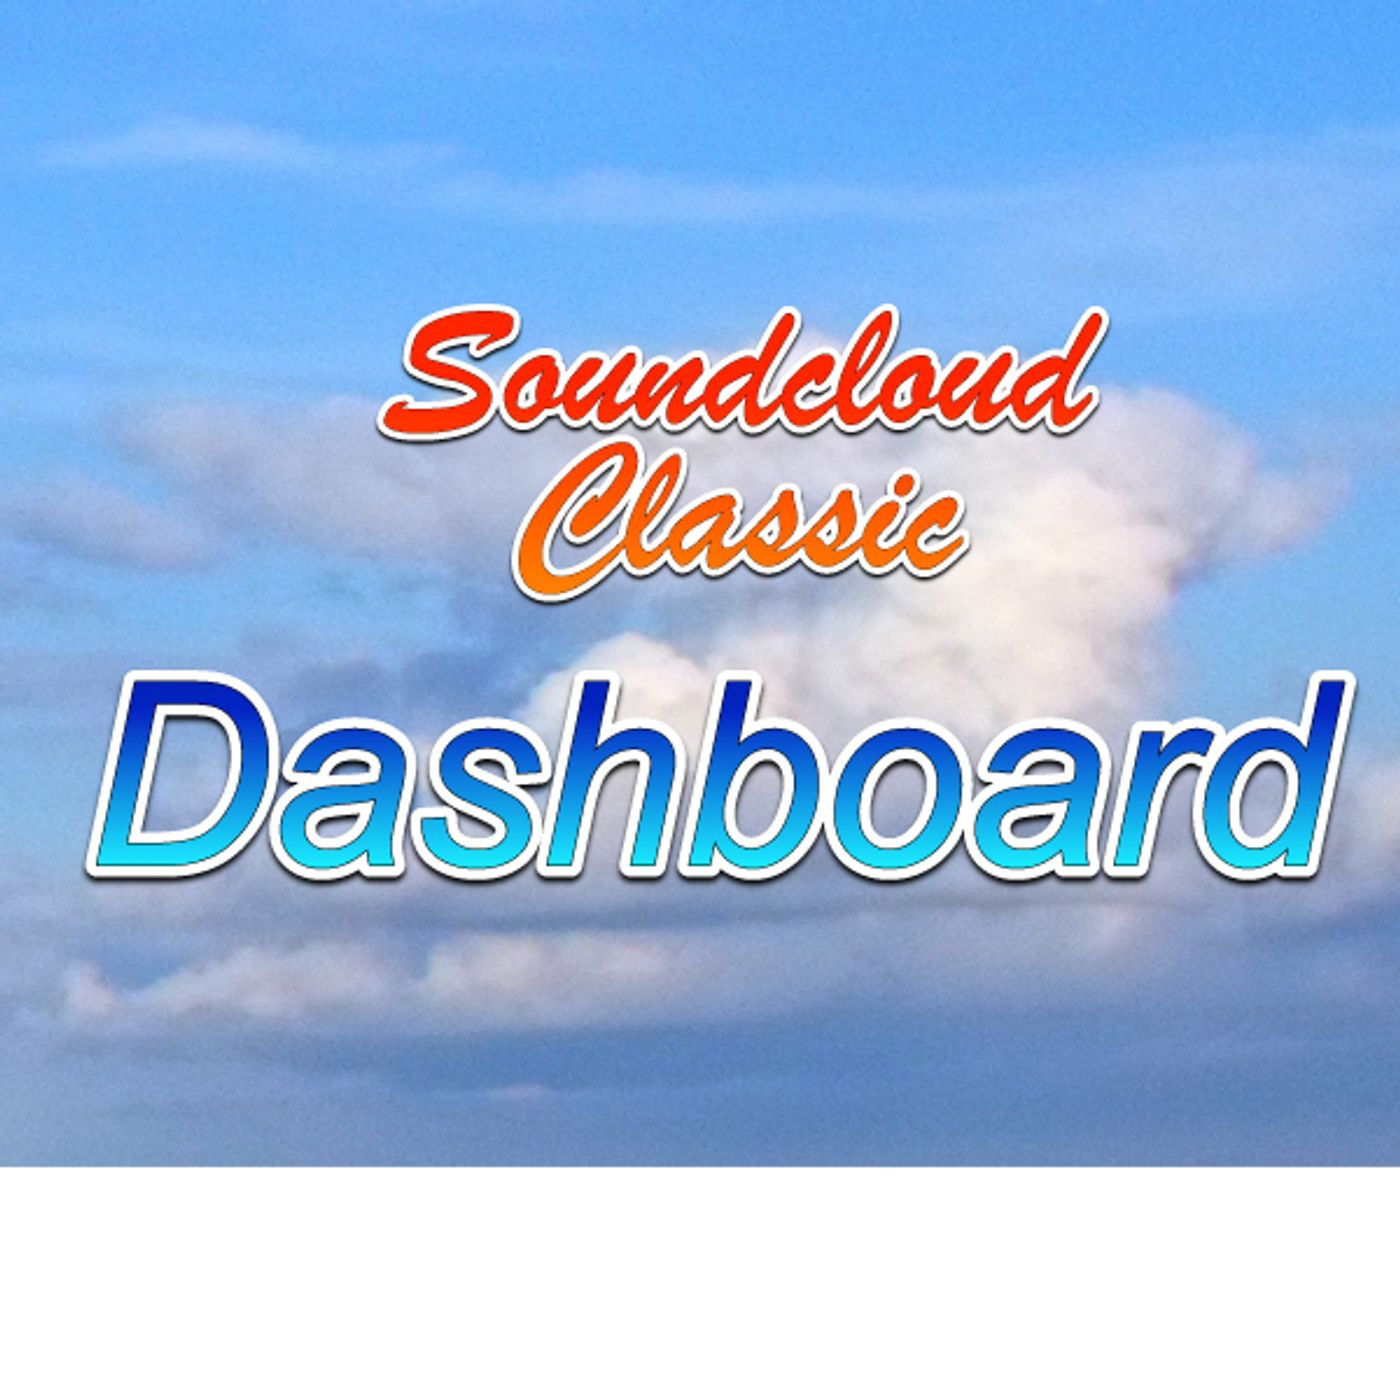 Soundcloud Classic Dashboard